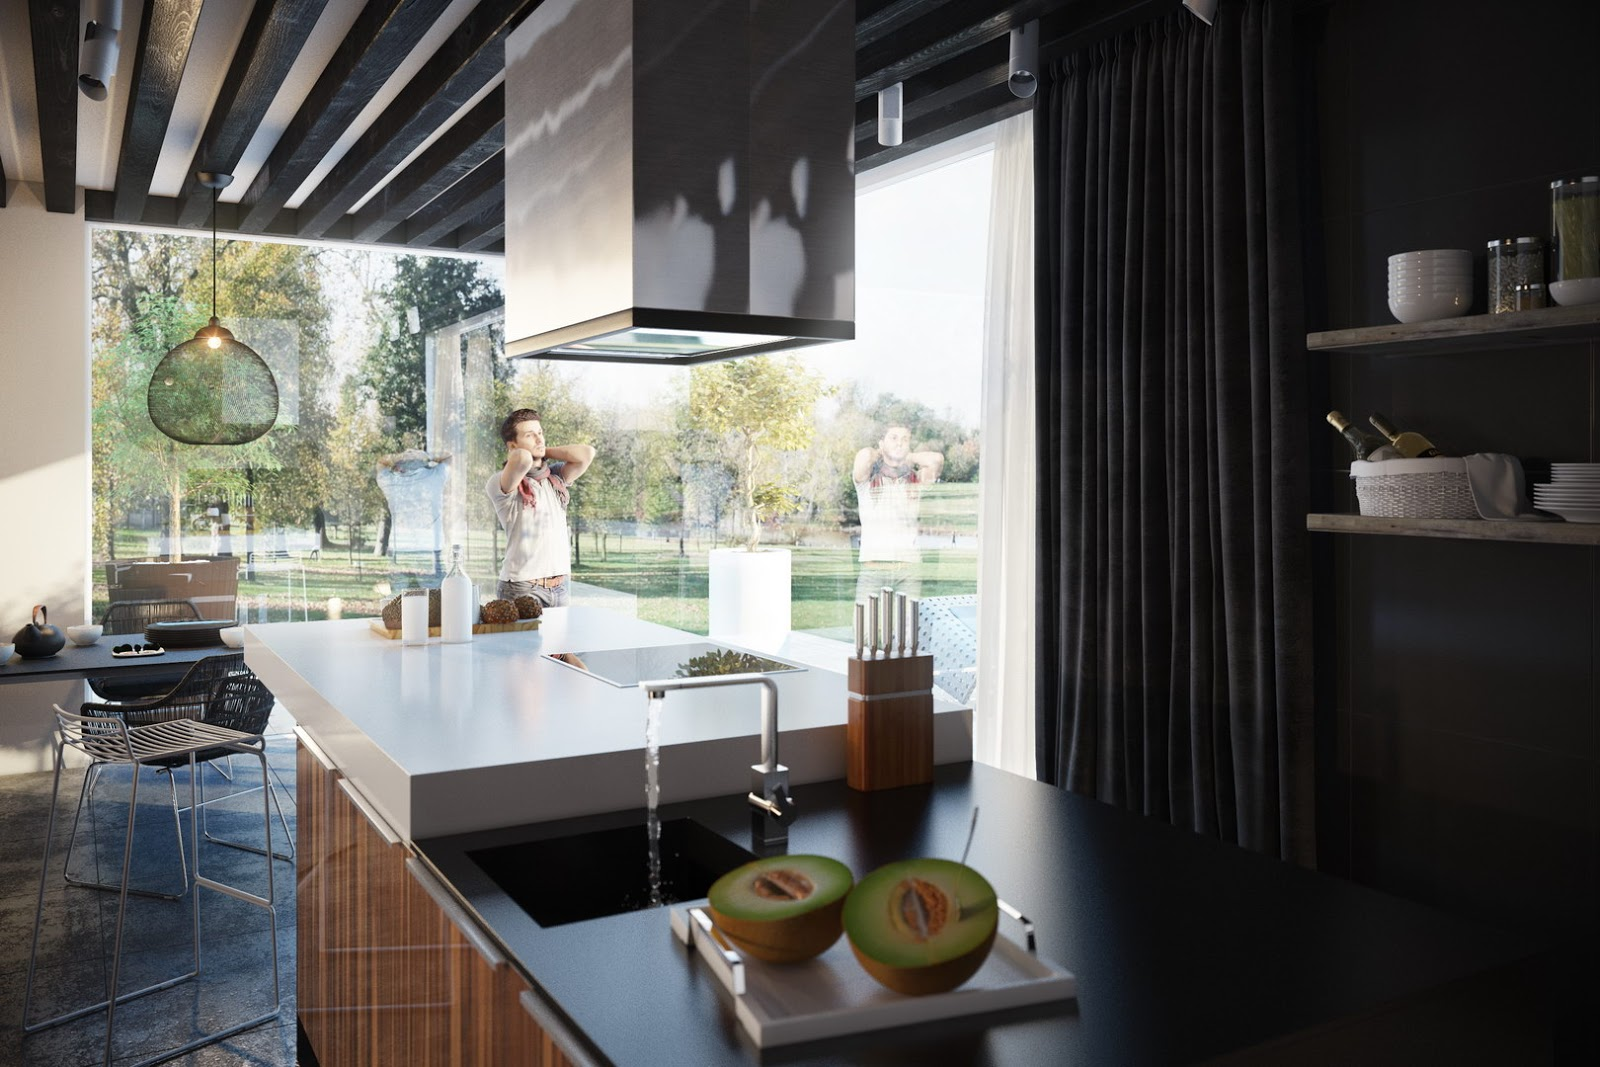 Contemporary Kitchen Interior with natural landscape